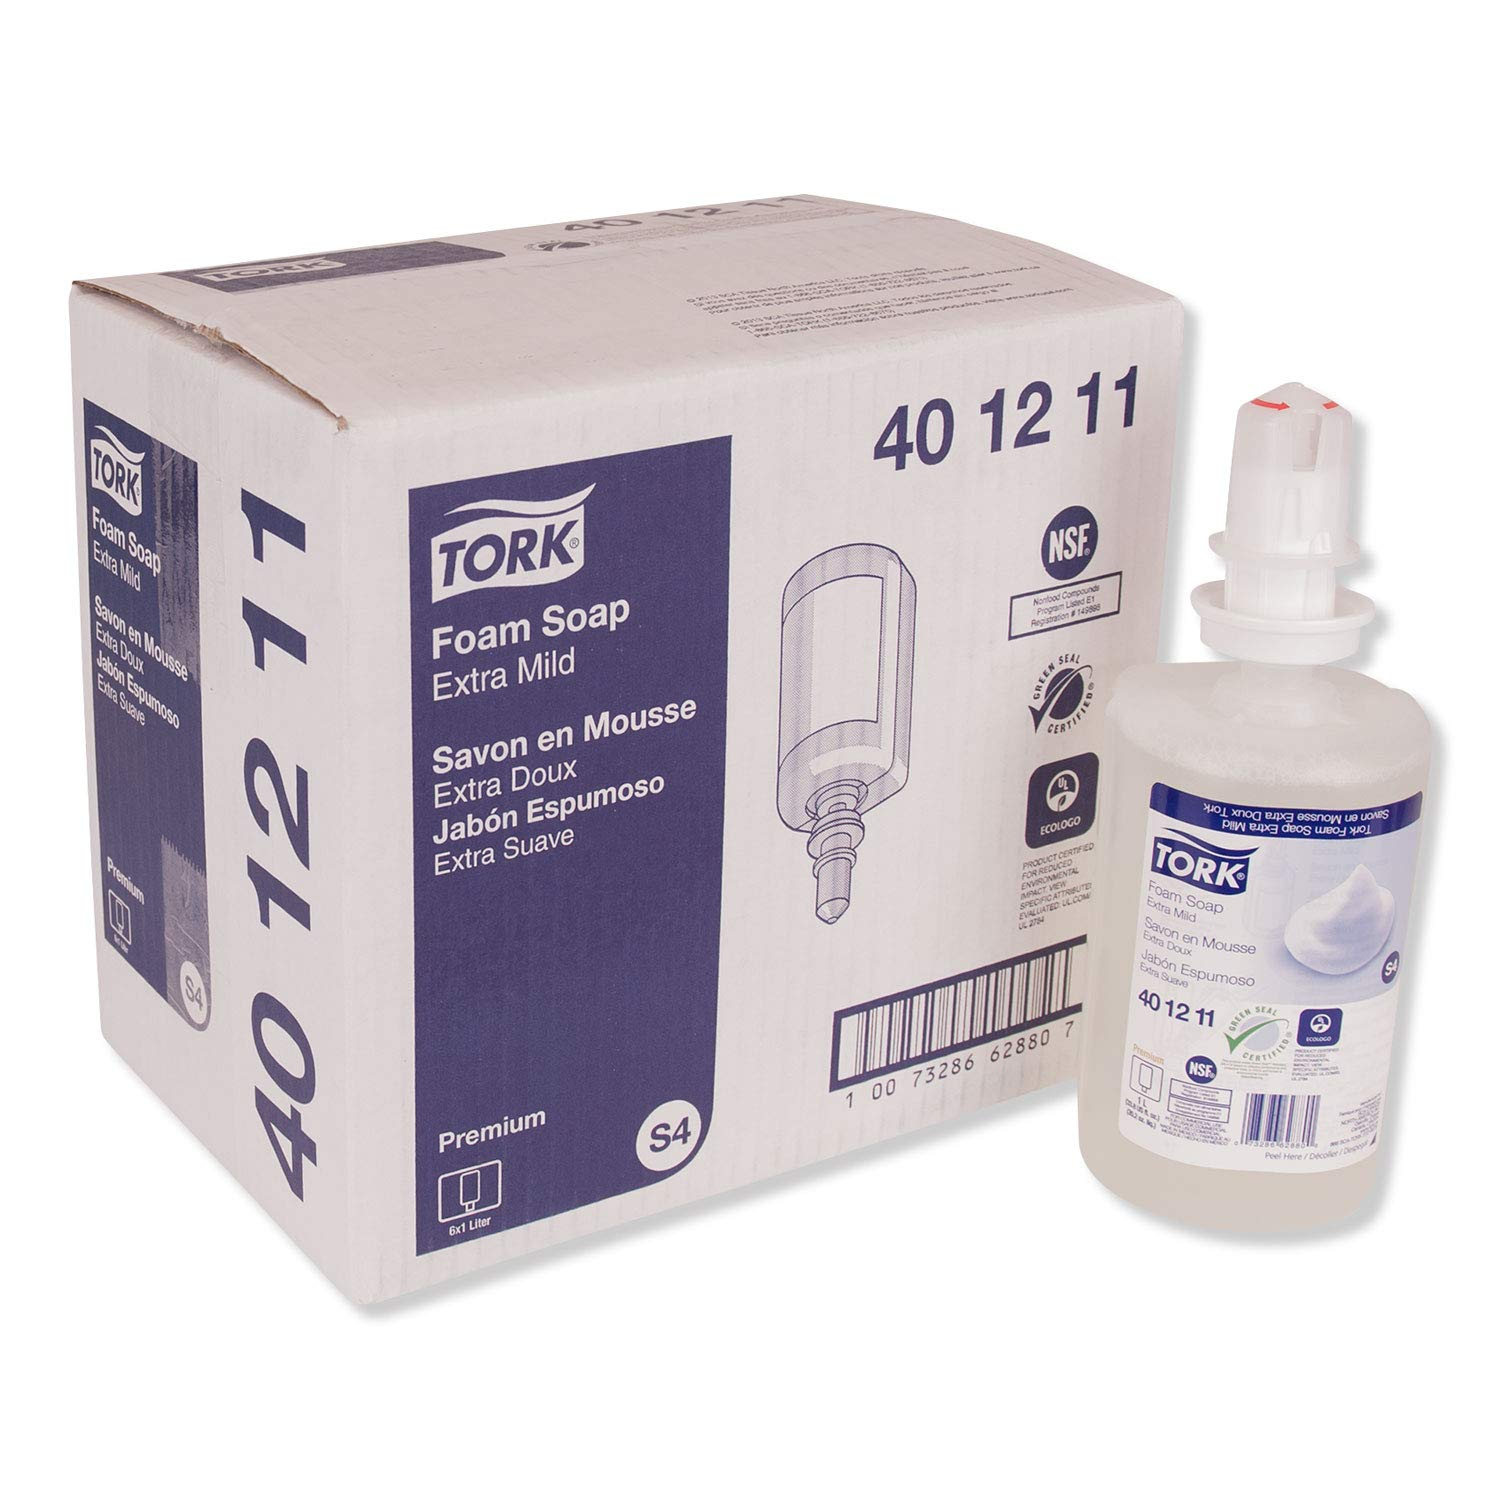 Tork Extra Mild Foam Soap - 401211 - Soap for S4 Dispenser Systems - Premium Quality, Fragrance- and Dye-free 1 x 33.815 fl oz: Industrial & Scientific